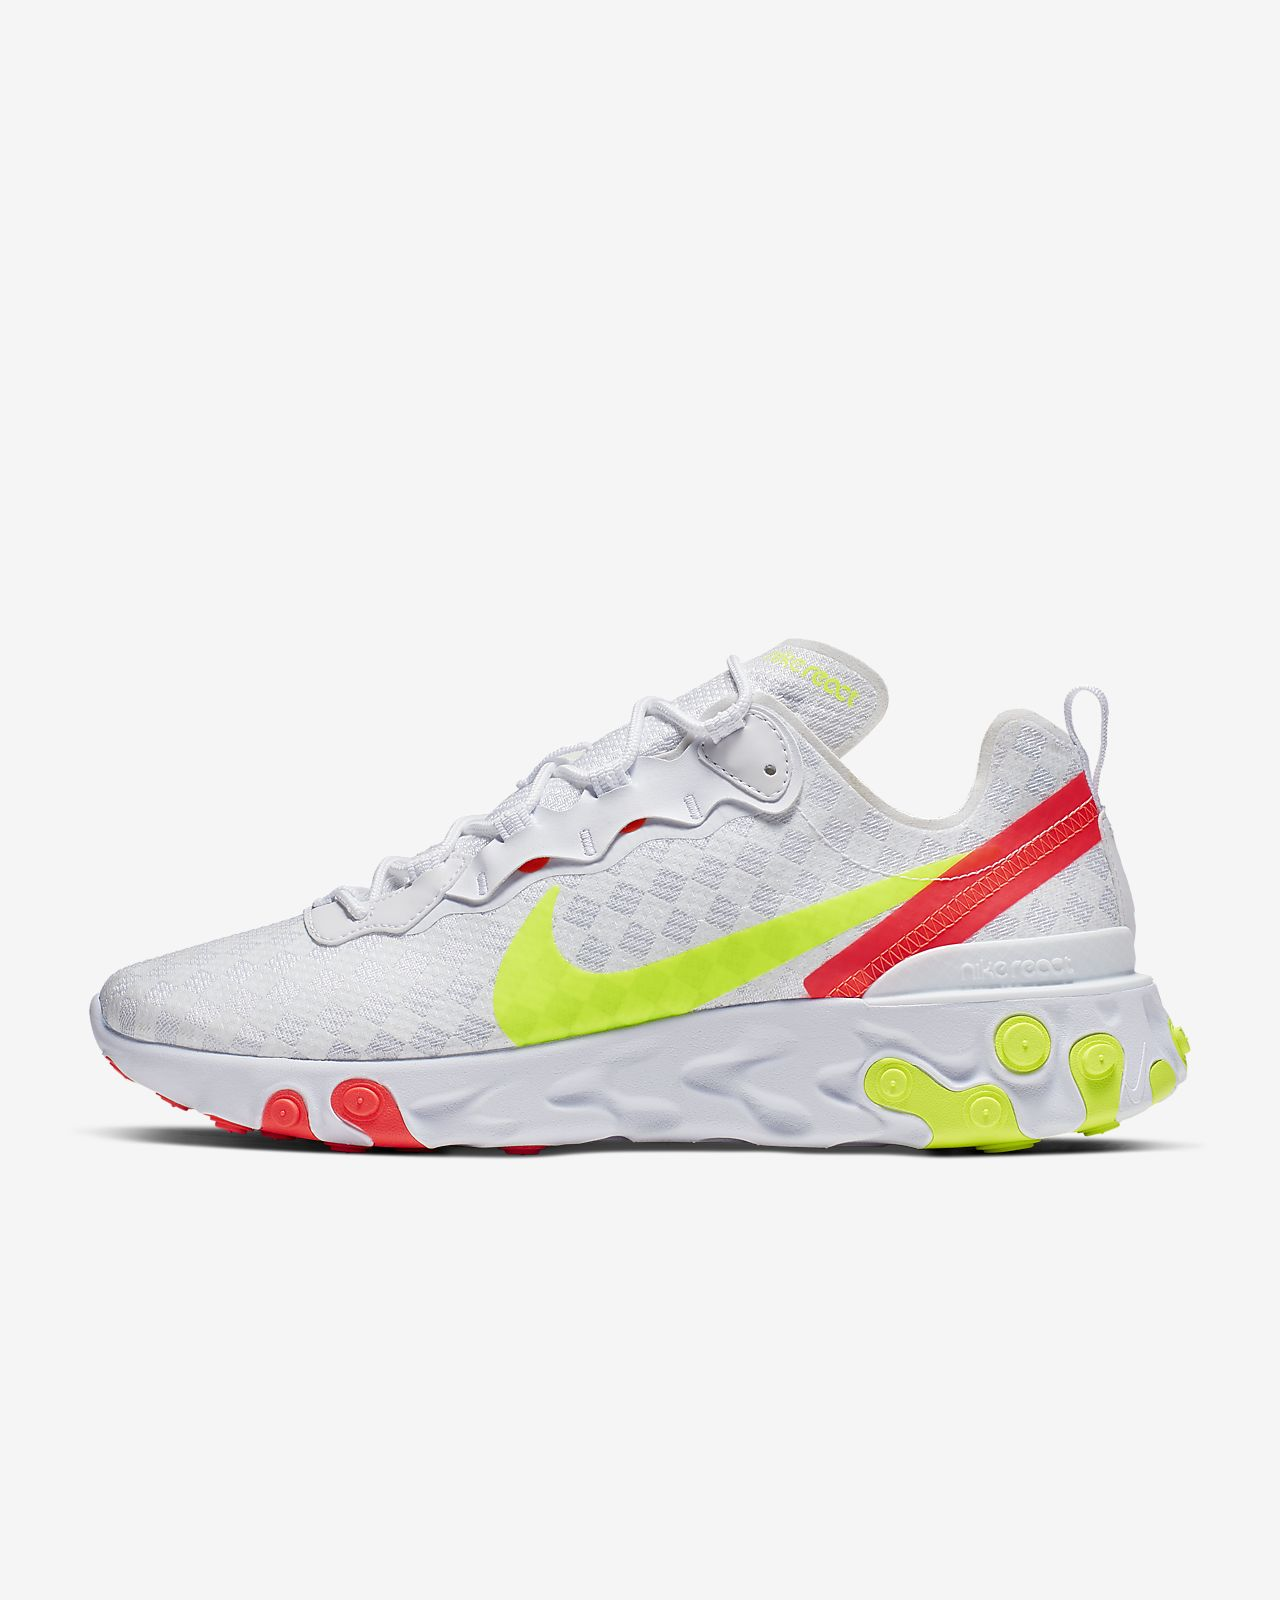 React 55 Nike Chaussure Element pour Homme 67gIbfyvY